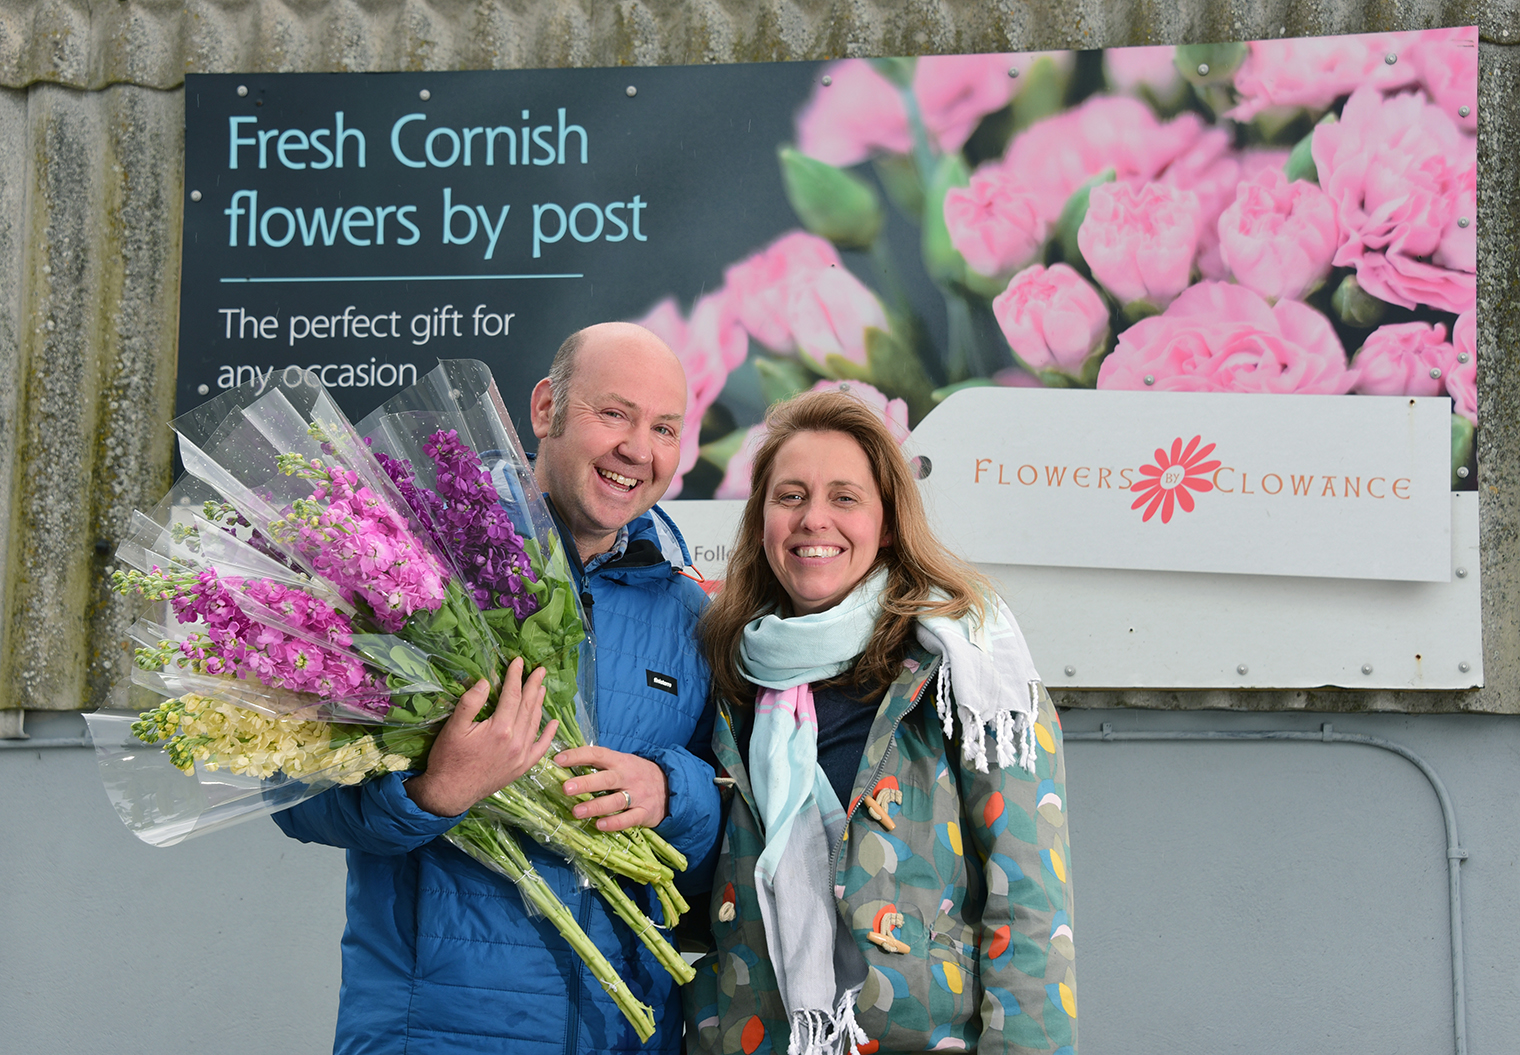 British flower growers - James Cock from Flowers by Clowance